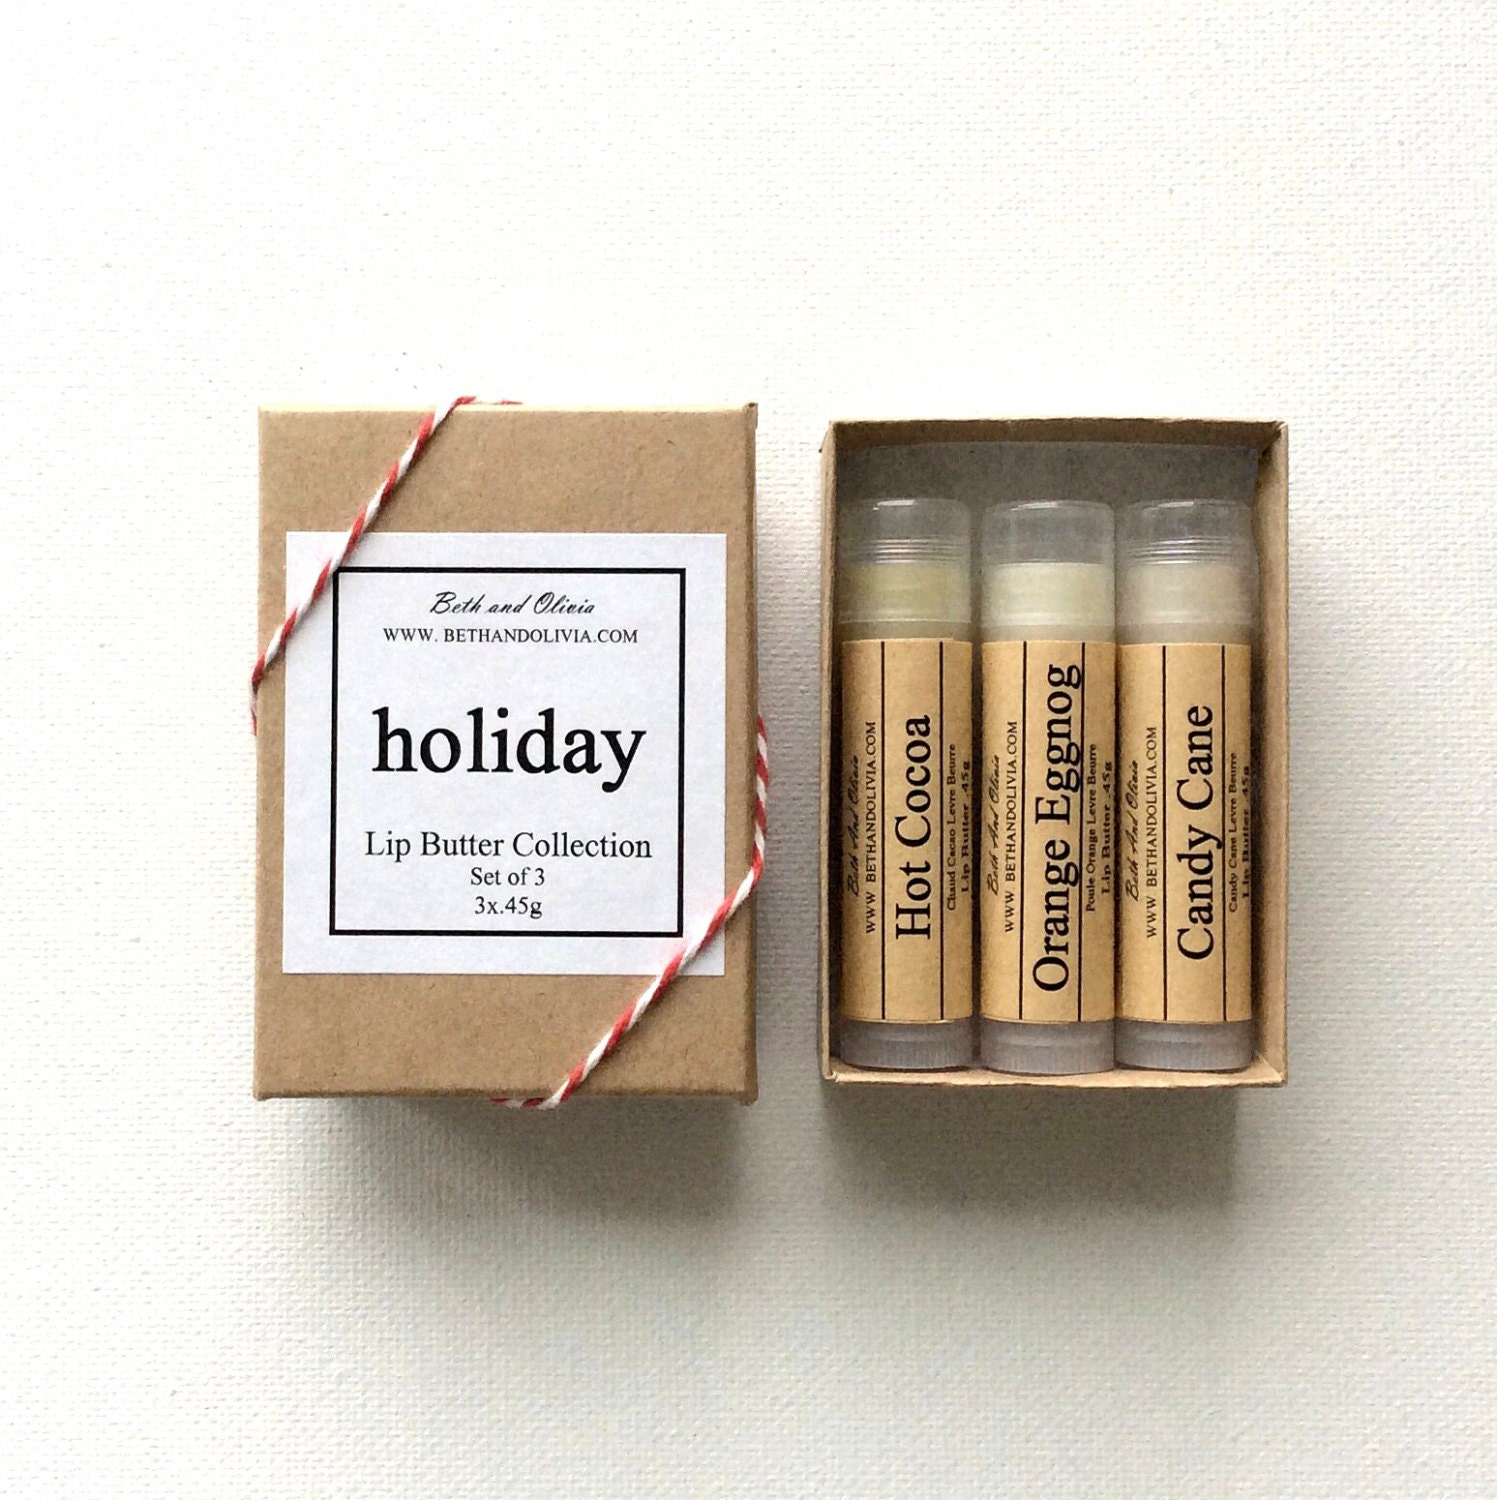 Set of 3 Holiday lip butters, lip balms, Orange Eggnog lip balm, hot cocoa lip balm, candy cane lip balm, Christmas lip balms, lip balm set